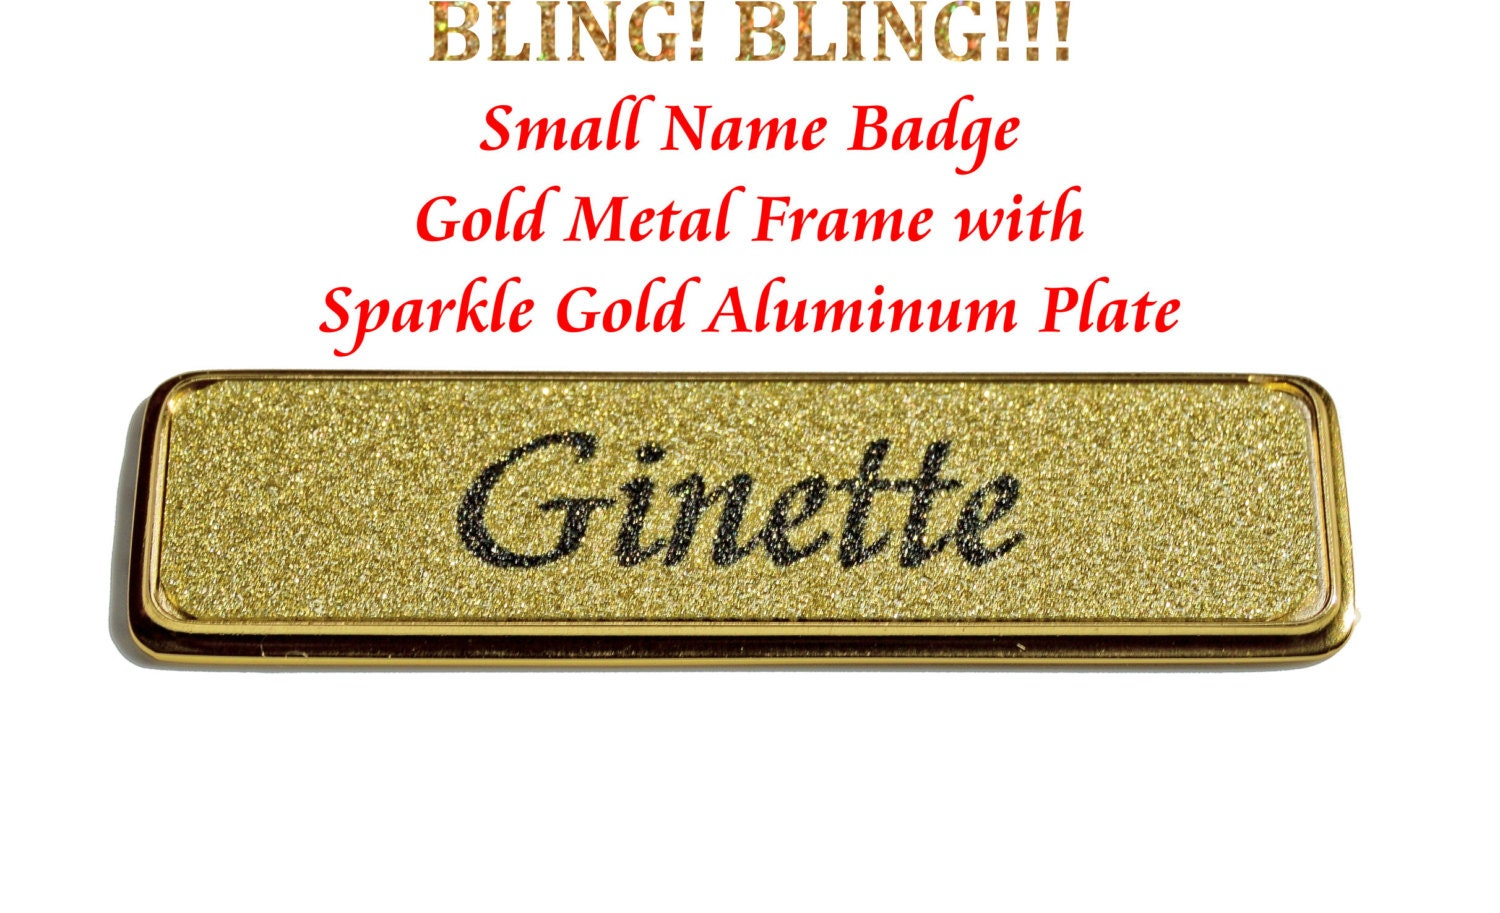 Name Badge: Name Badges With Magnetic Fastener Bling Bling Name Tags